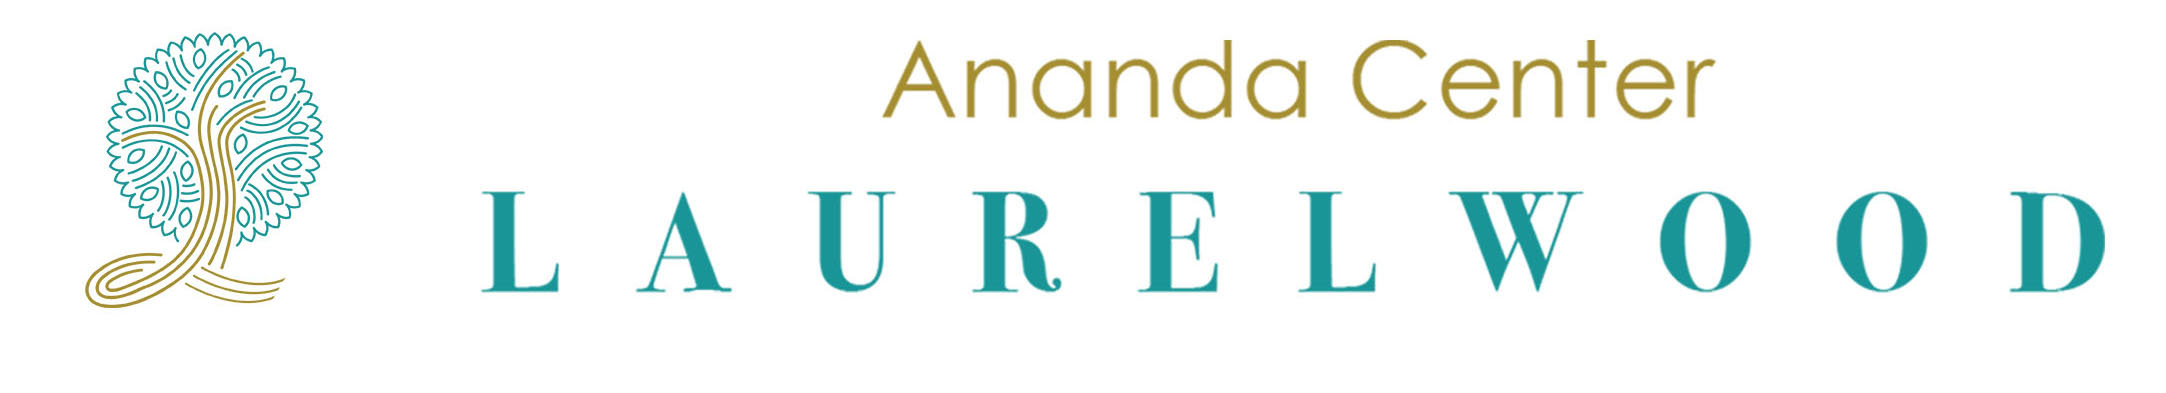 Ananda Center at Laurelwood